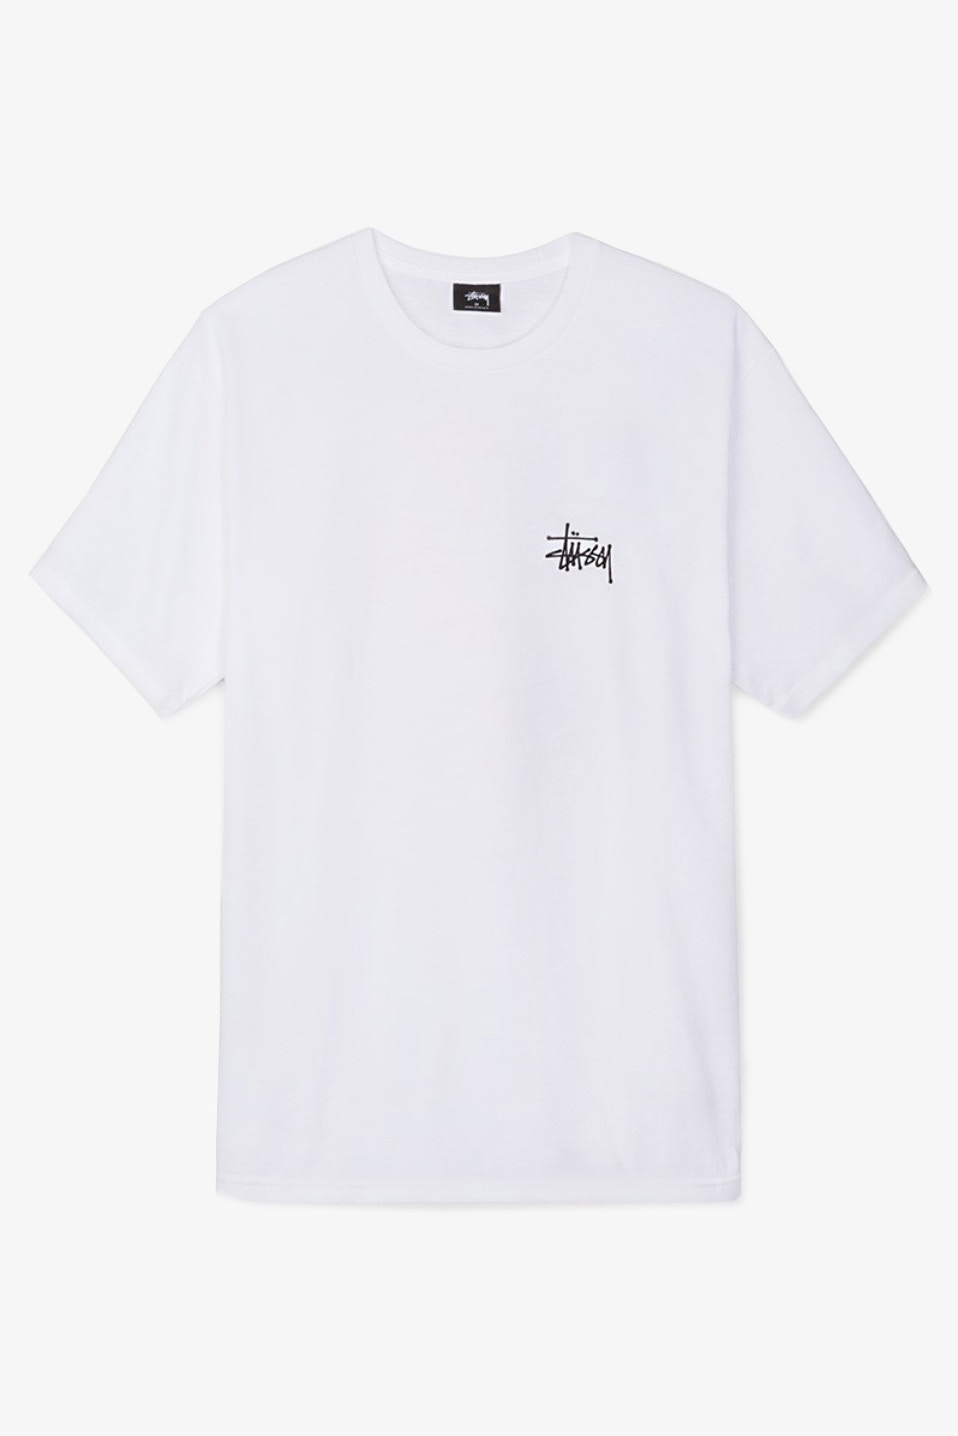 http---bae.hypebeast.com-files-2017-07-stussy-2017-july-releases-5